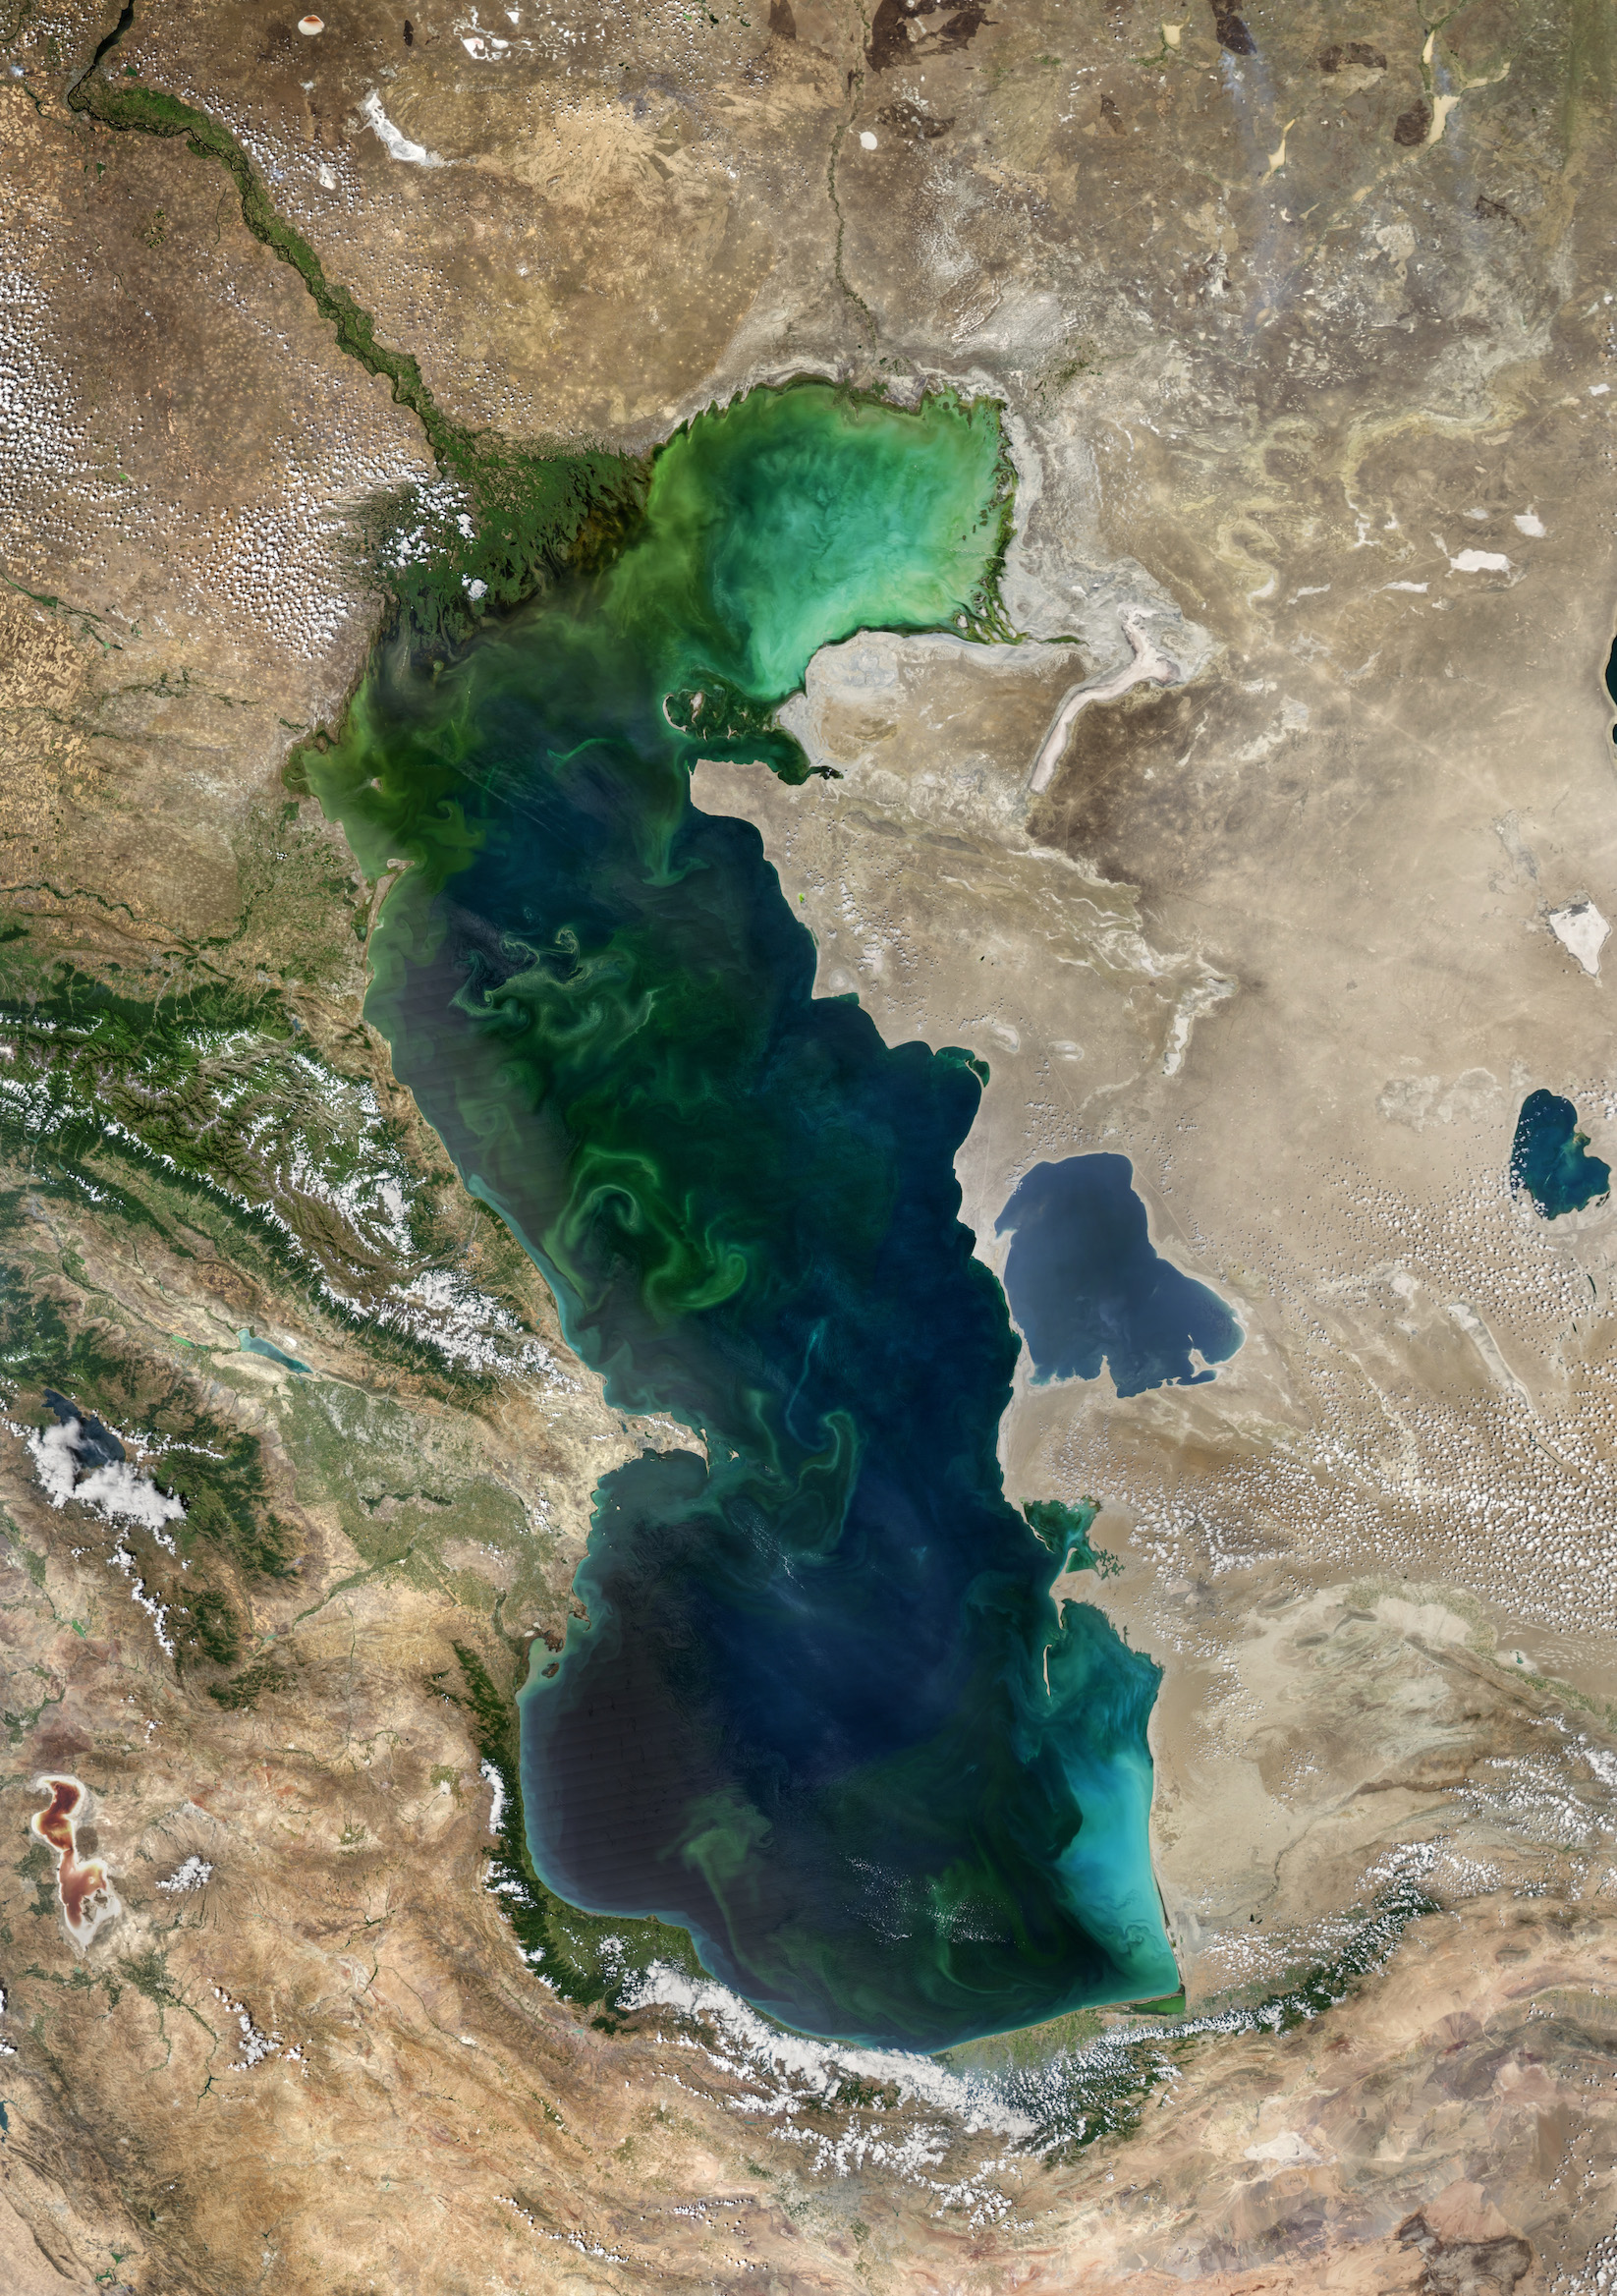 Today's Image of the Day comes thanks to the NASA Earth Observatory and features a look at beautiful phytoplankton blooms in the Caspian Sea.